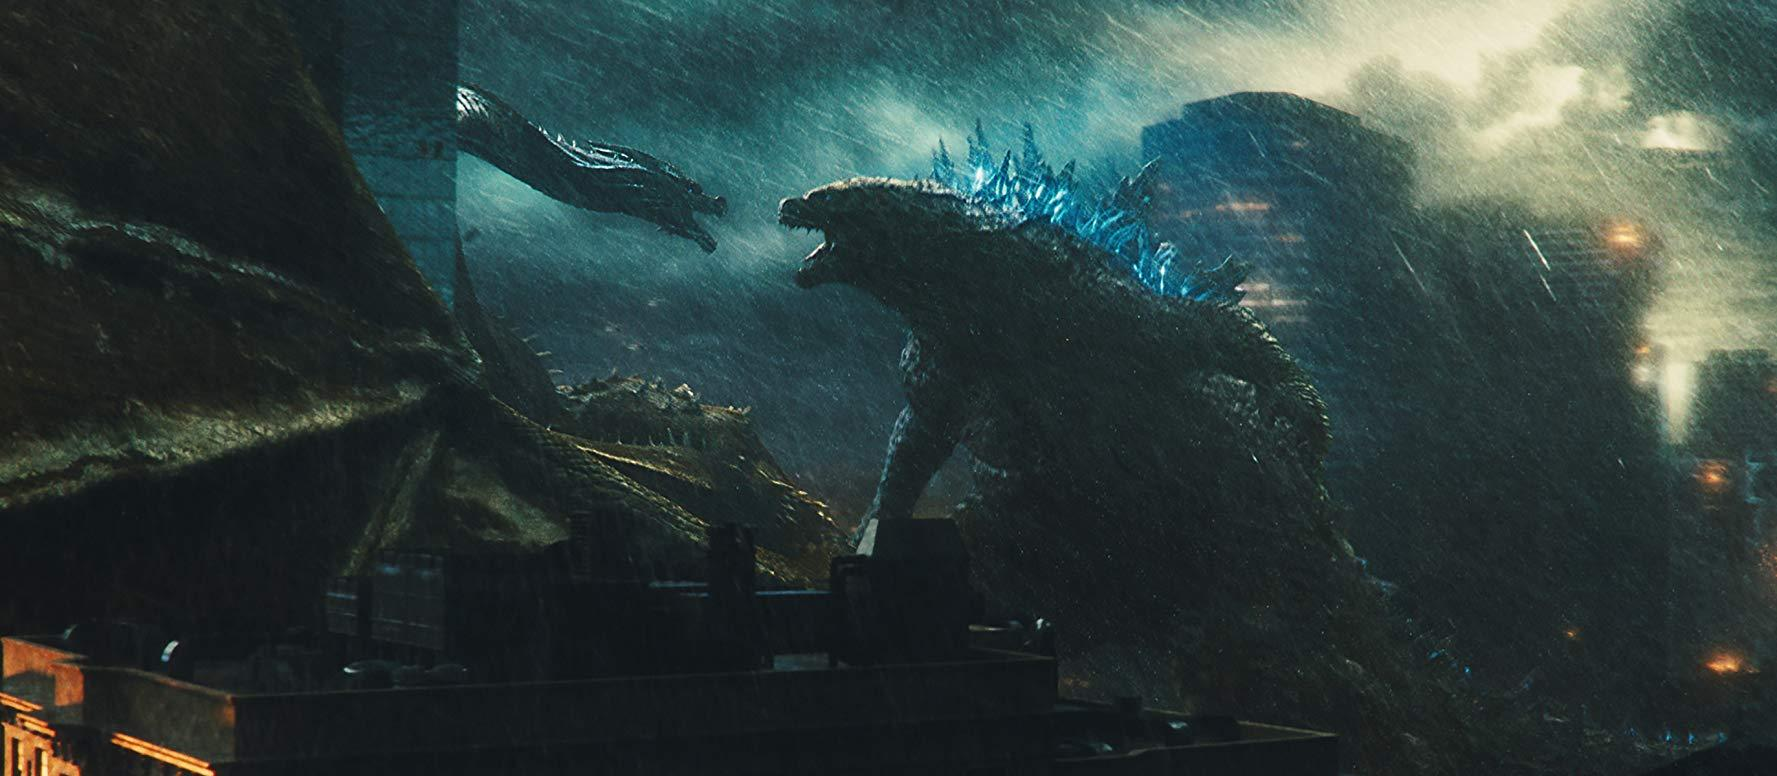 Is 'Godzilla: King Of The Monsters' Any Good? Here's What The Reviews Say